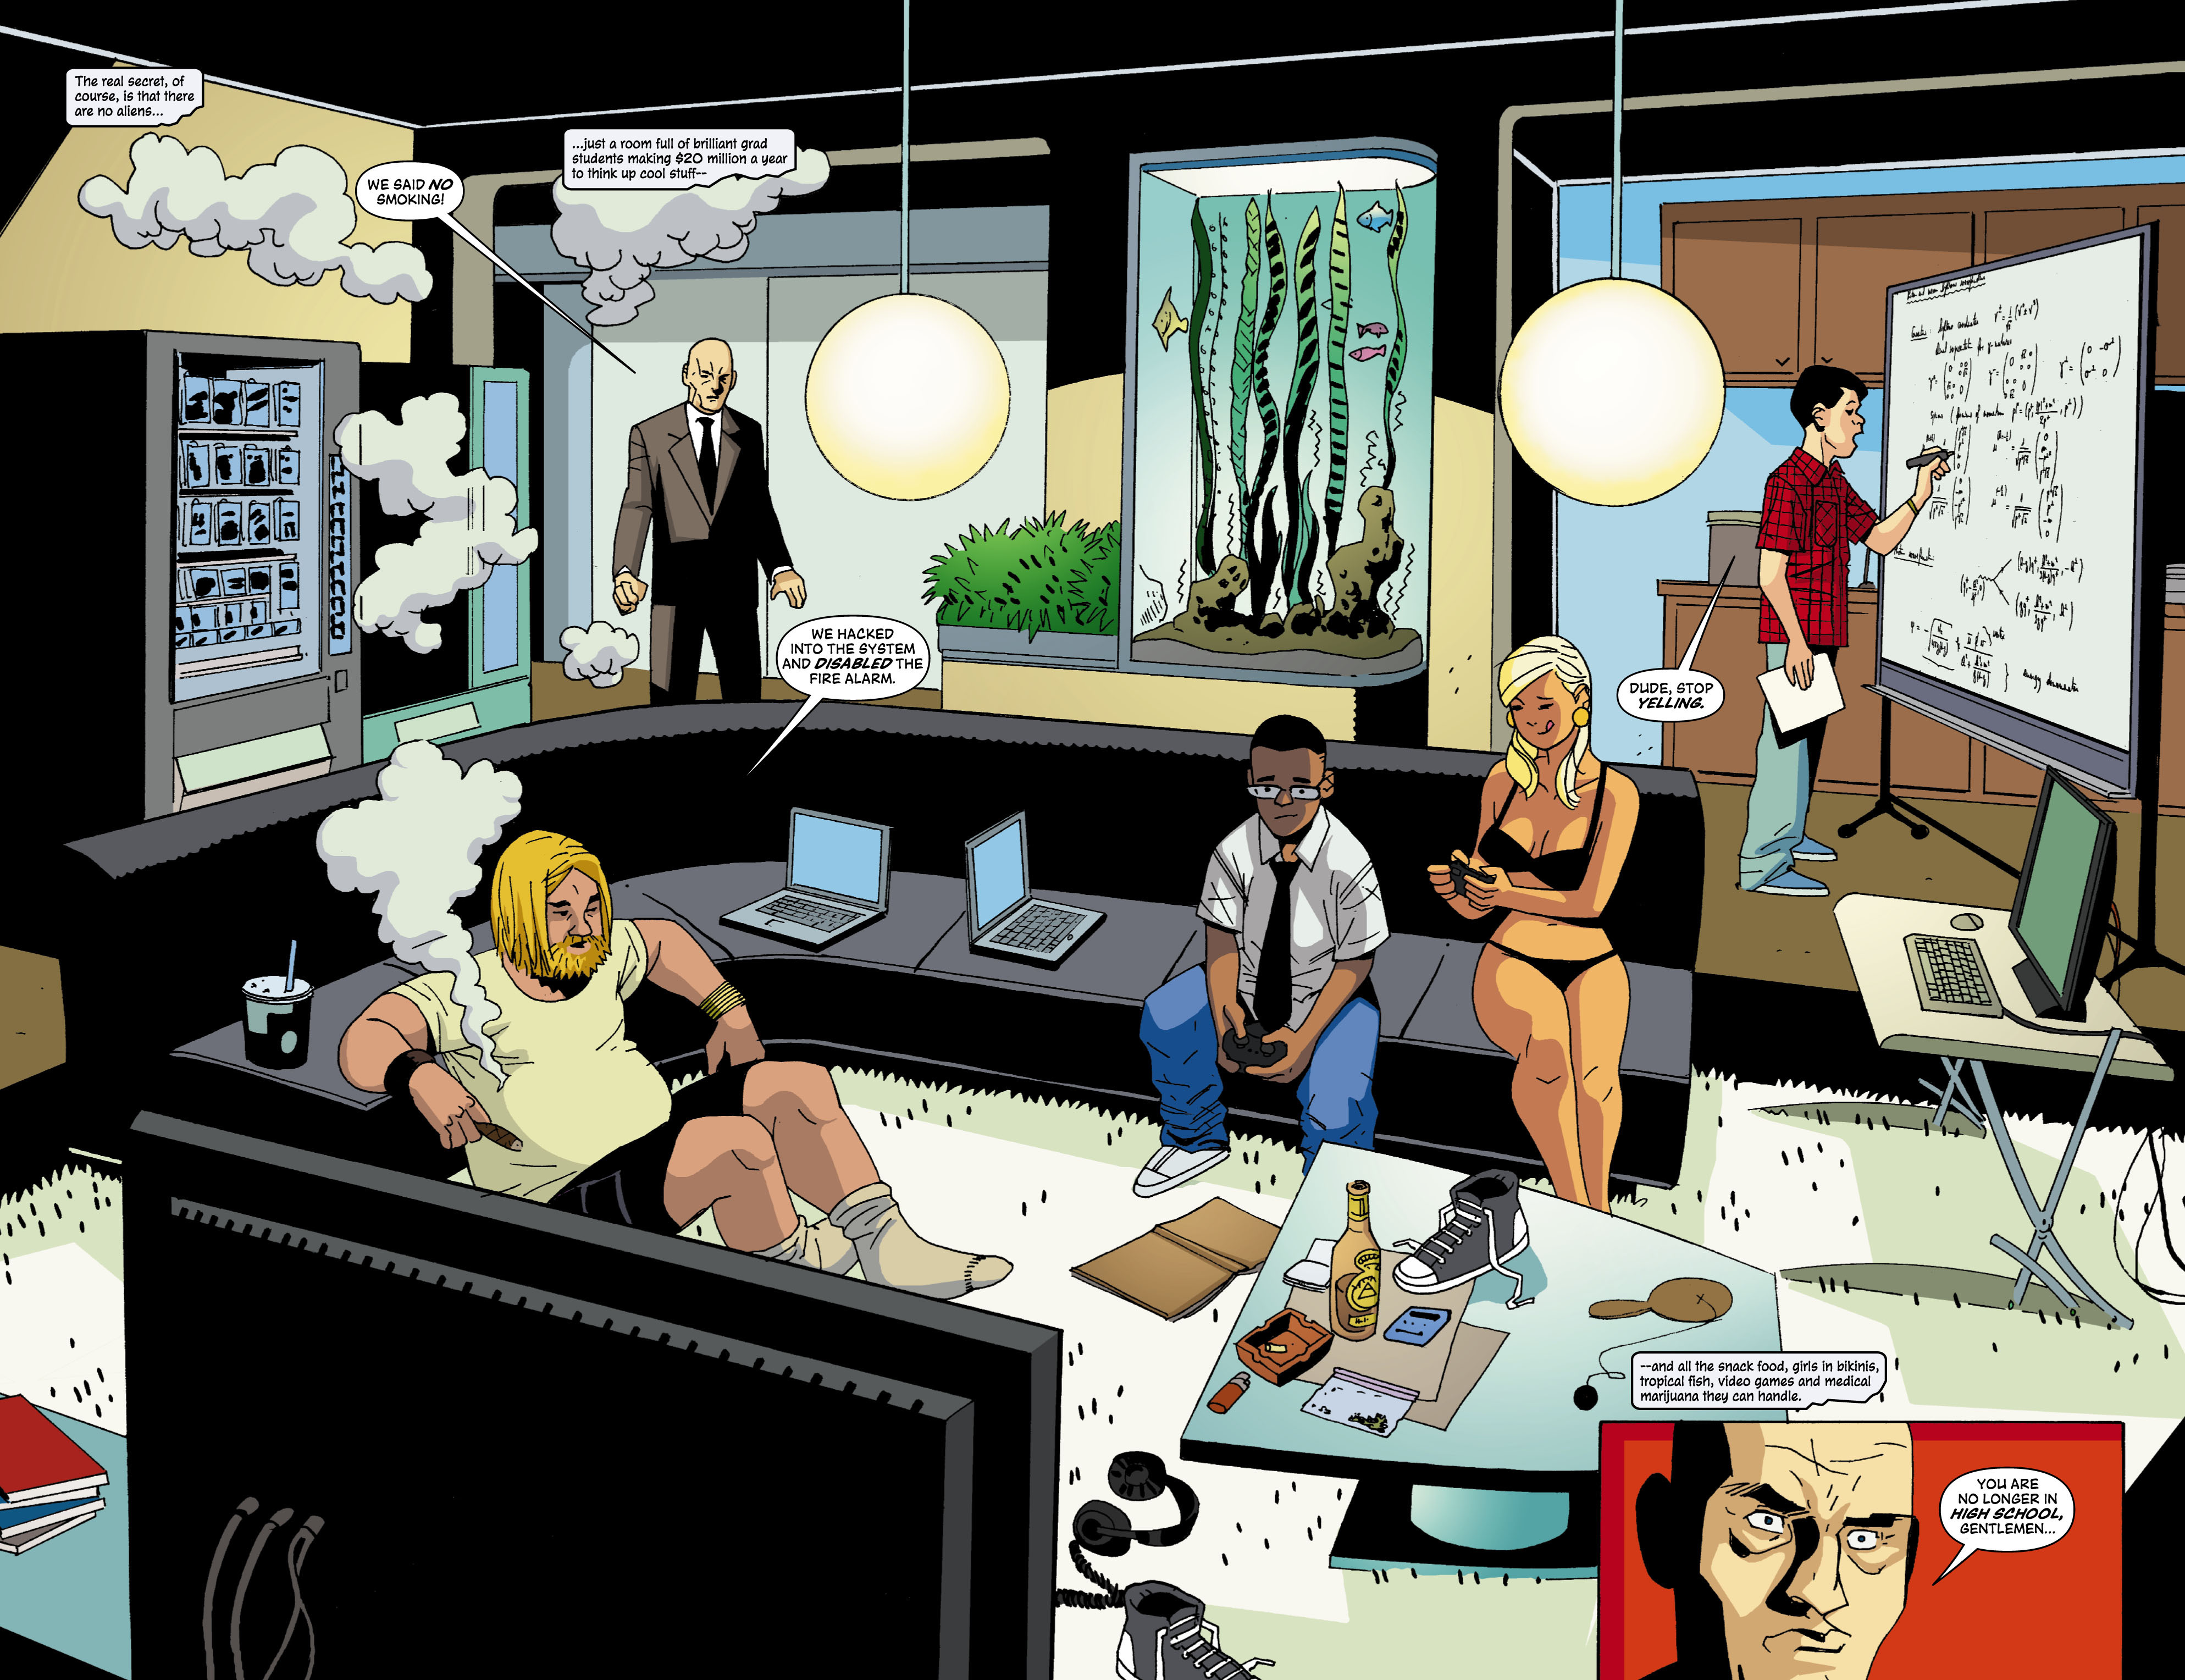 Read online Red Herring comic -  Issue #4 - 13